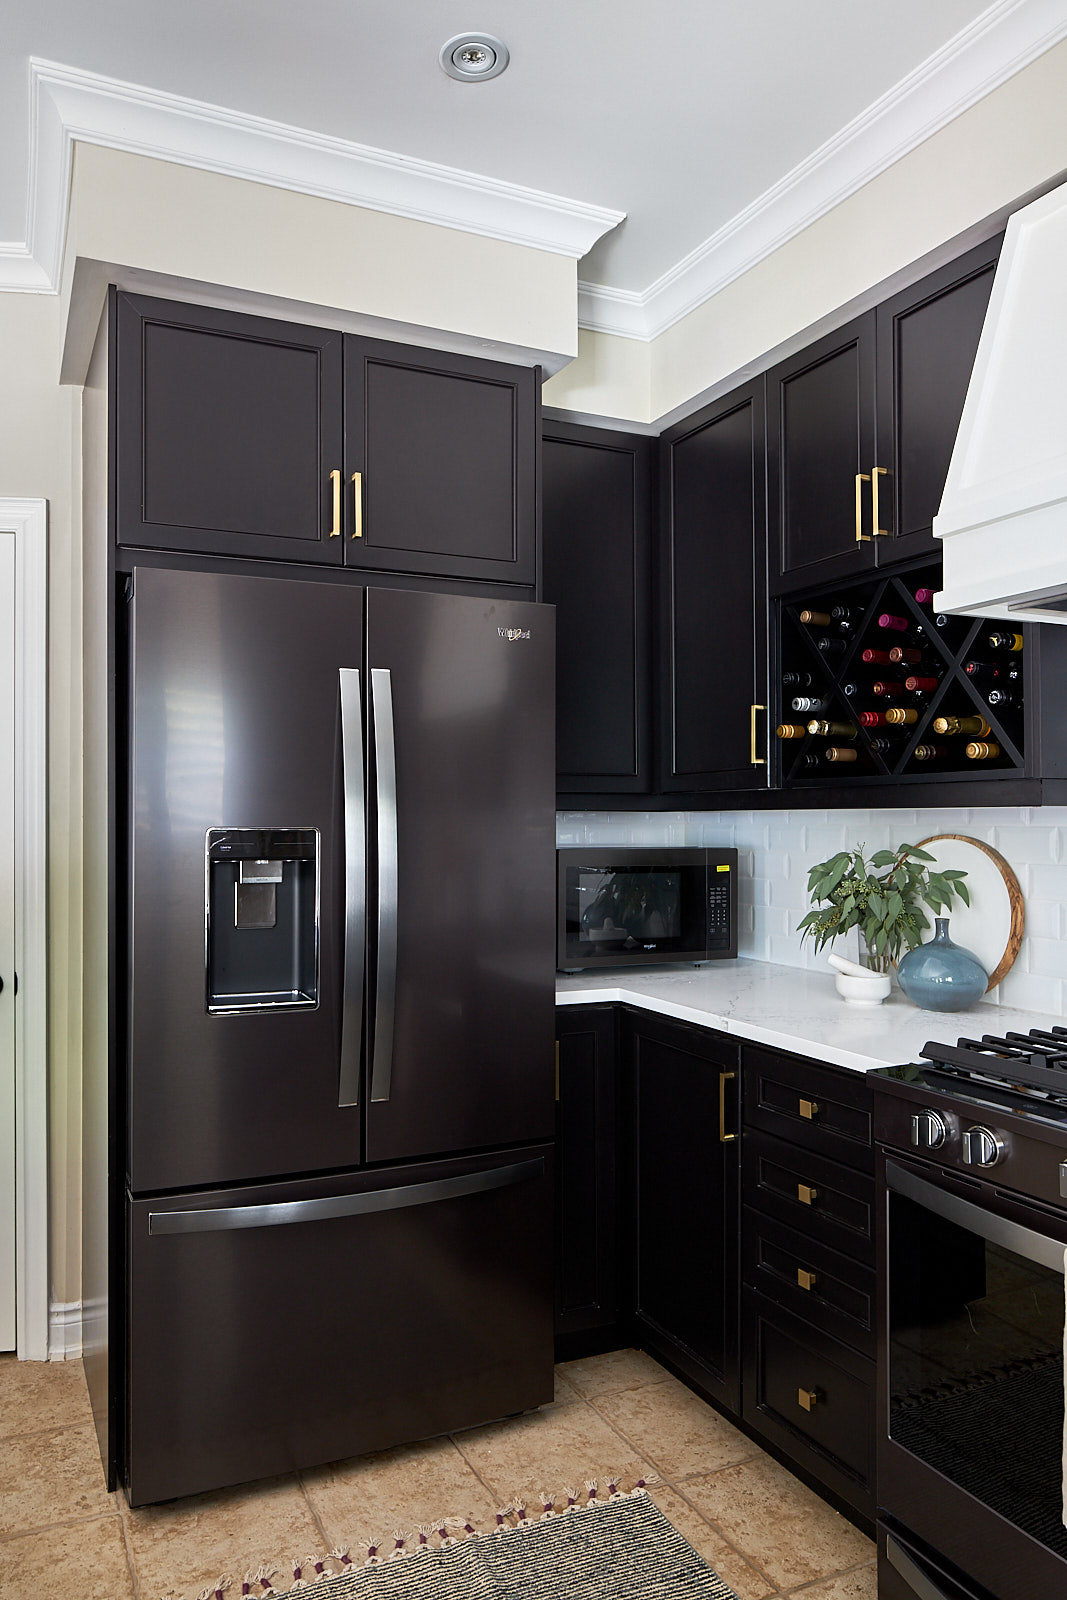 Black stainless steel fridge whirlpool